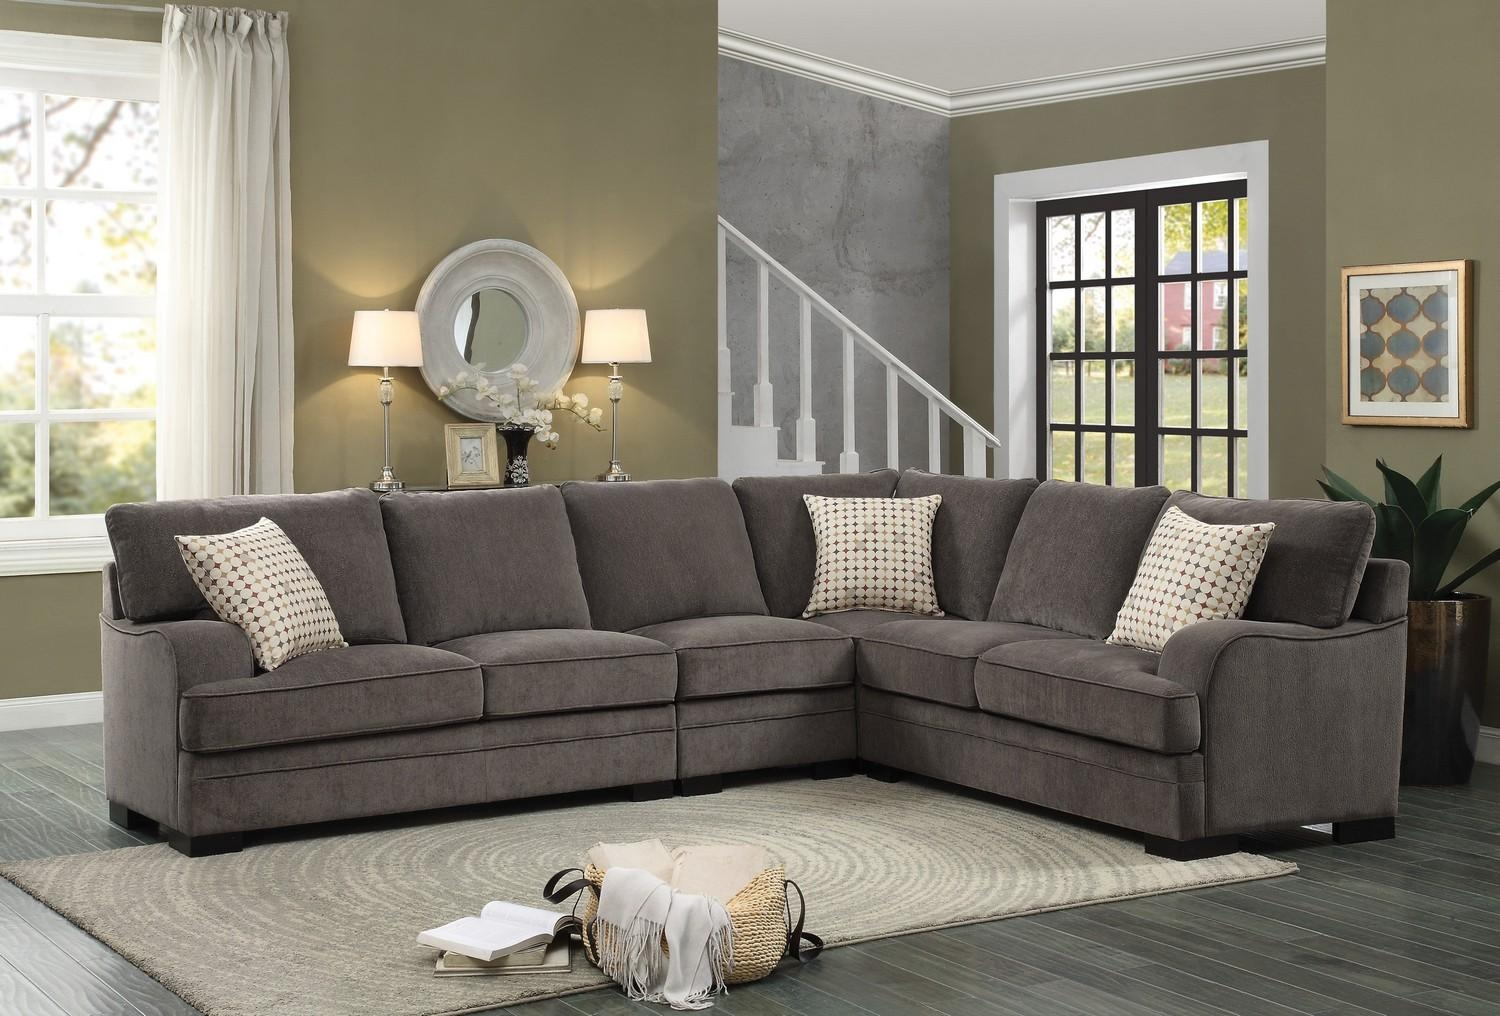 Homelegance Alamosa Sectional Sofa Set – Chenille – Brown 8335 Intended For Chenille Sectional Sofas (View 3 of 20)